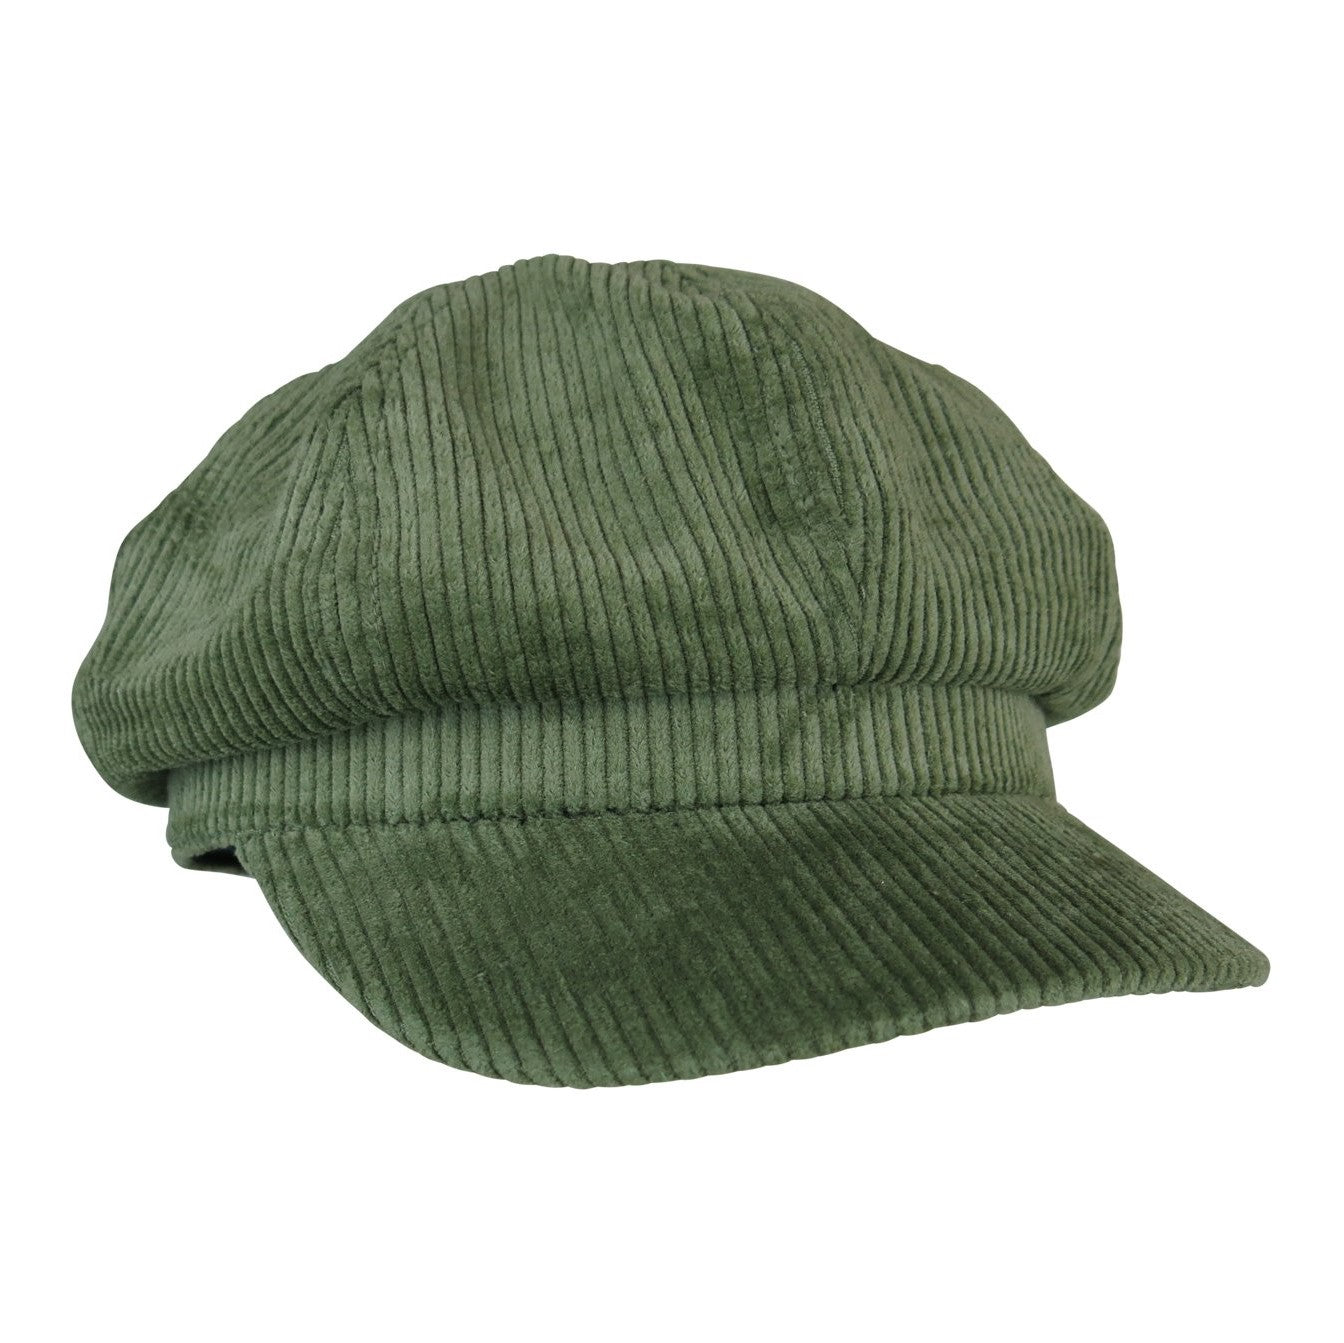 MALBOROUGH // Khaki Cap